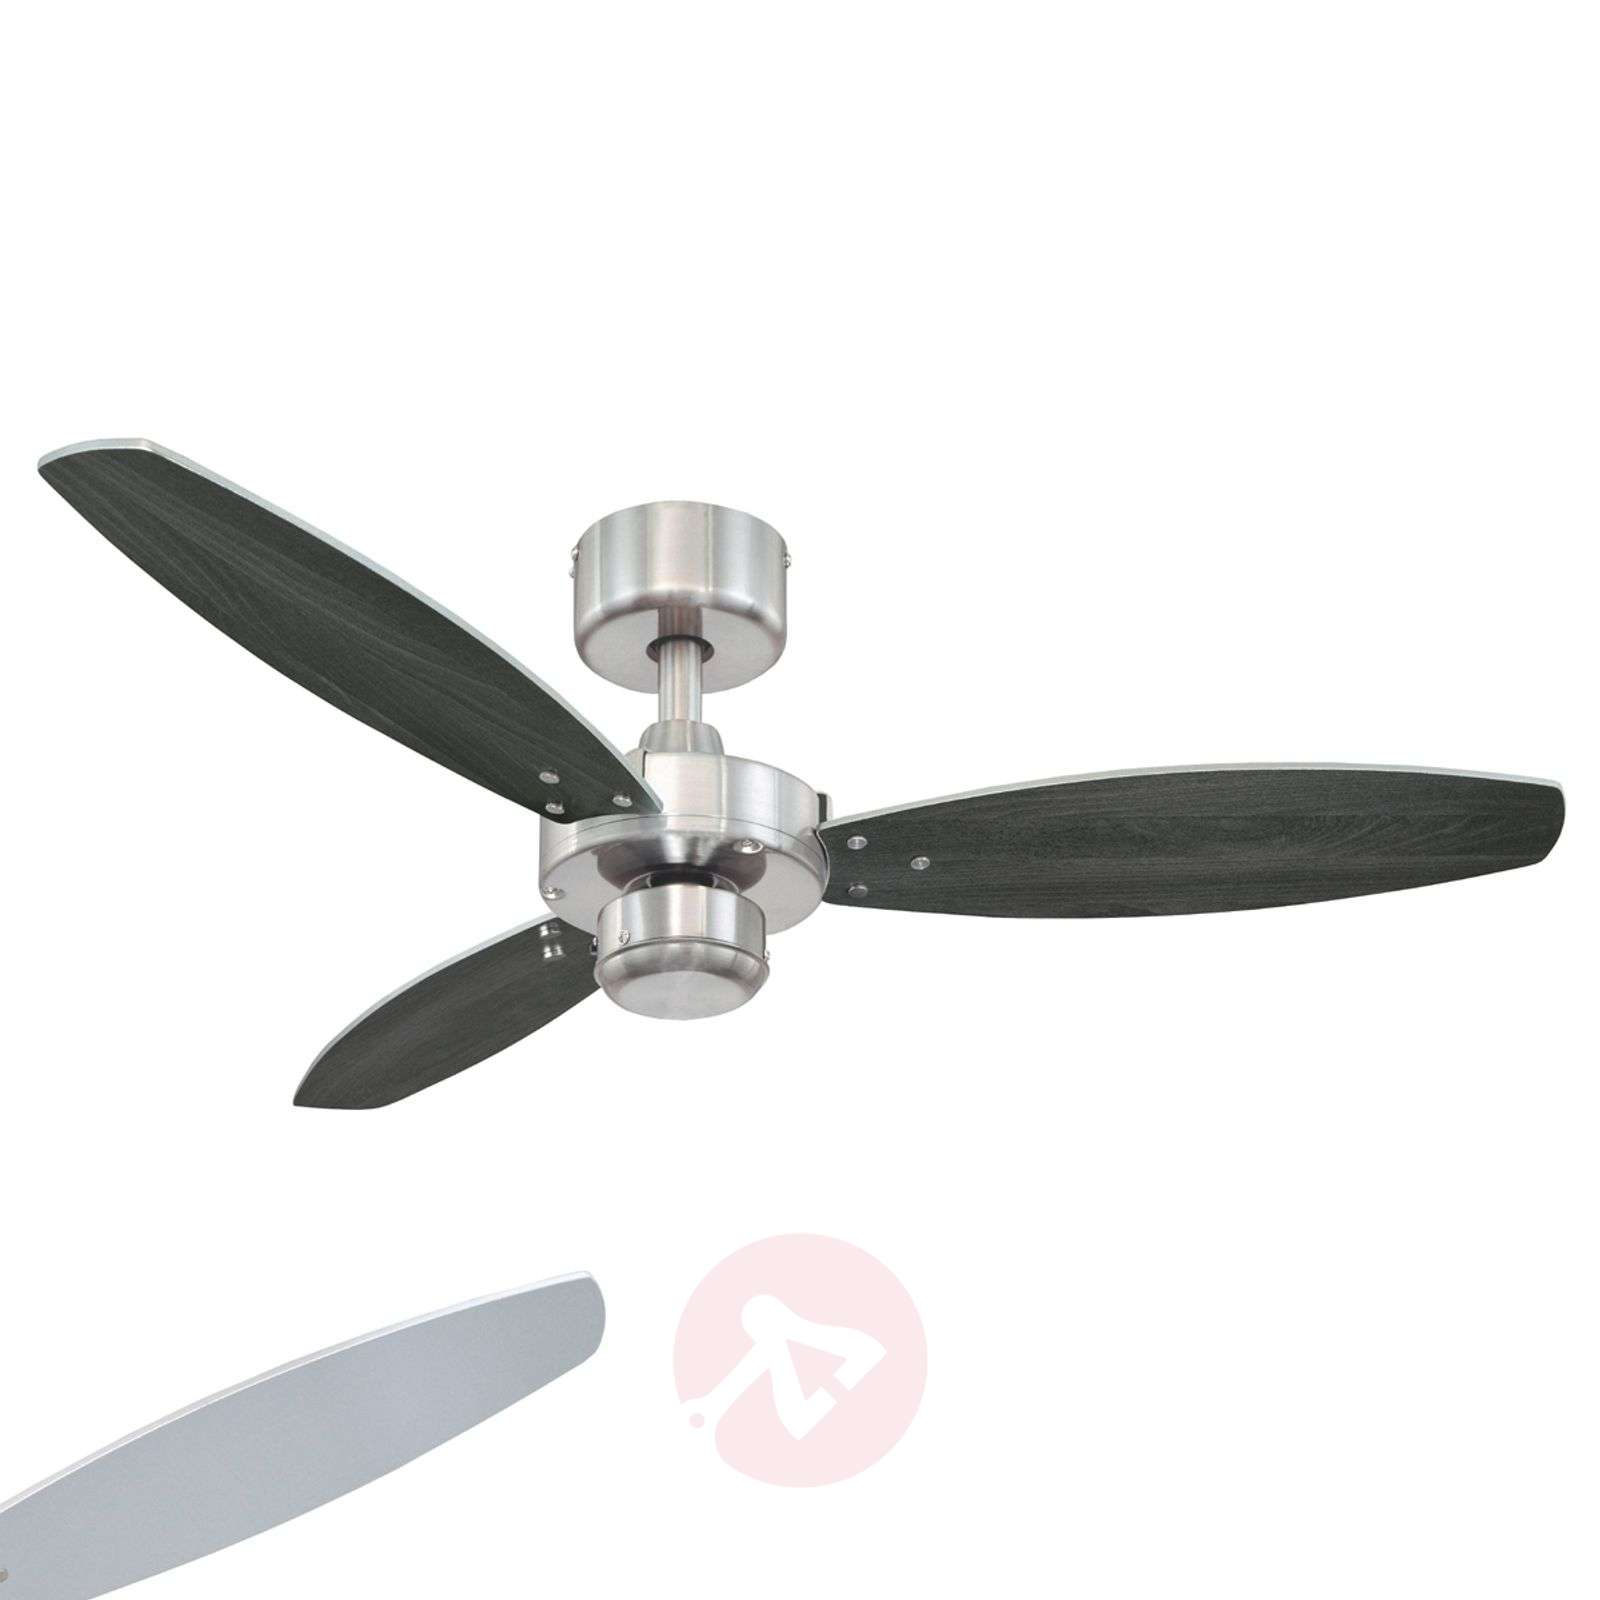 Jet I modern ceiling fan with pull switch-9602229-02